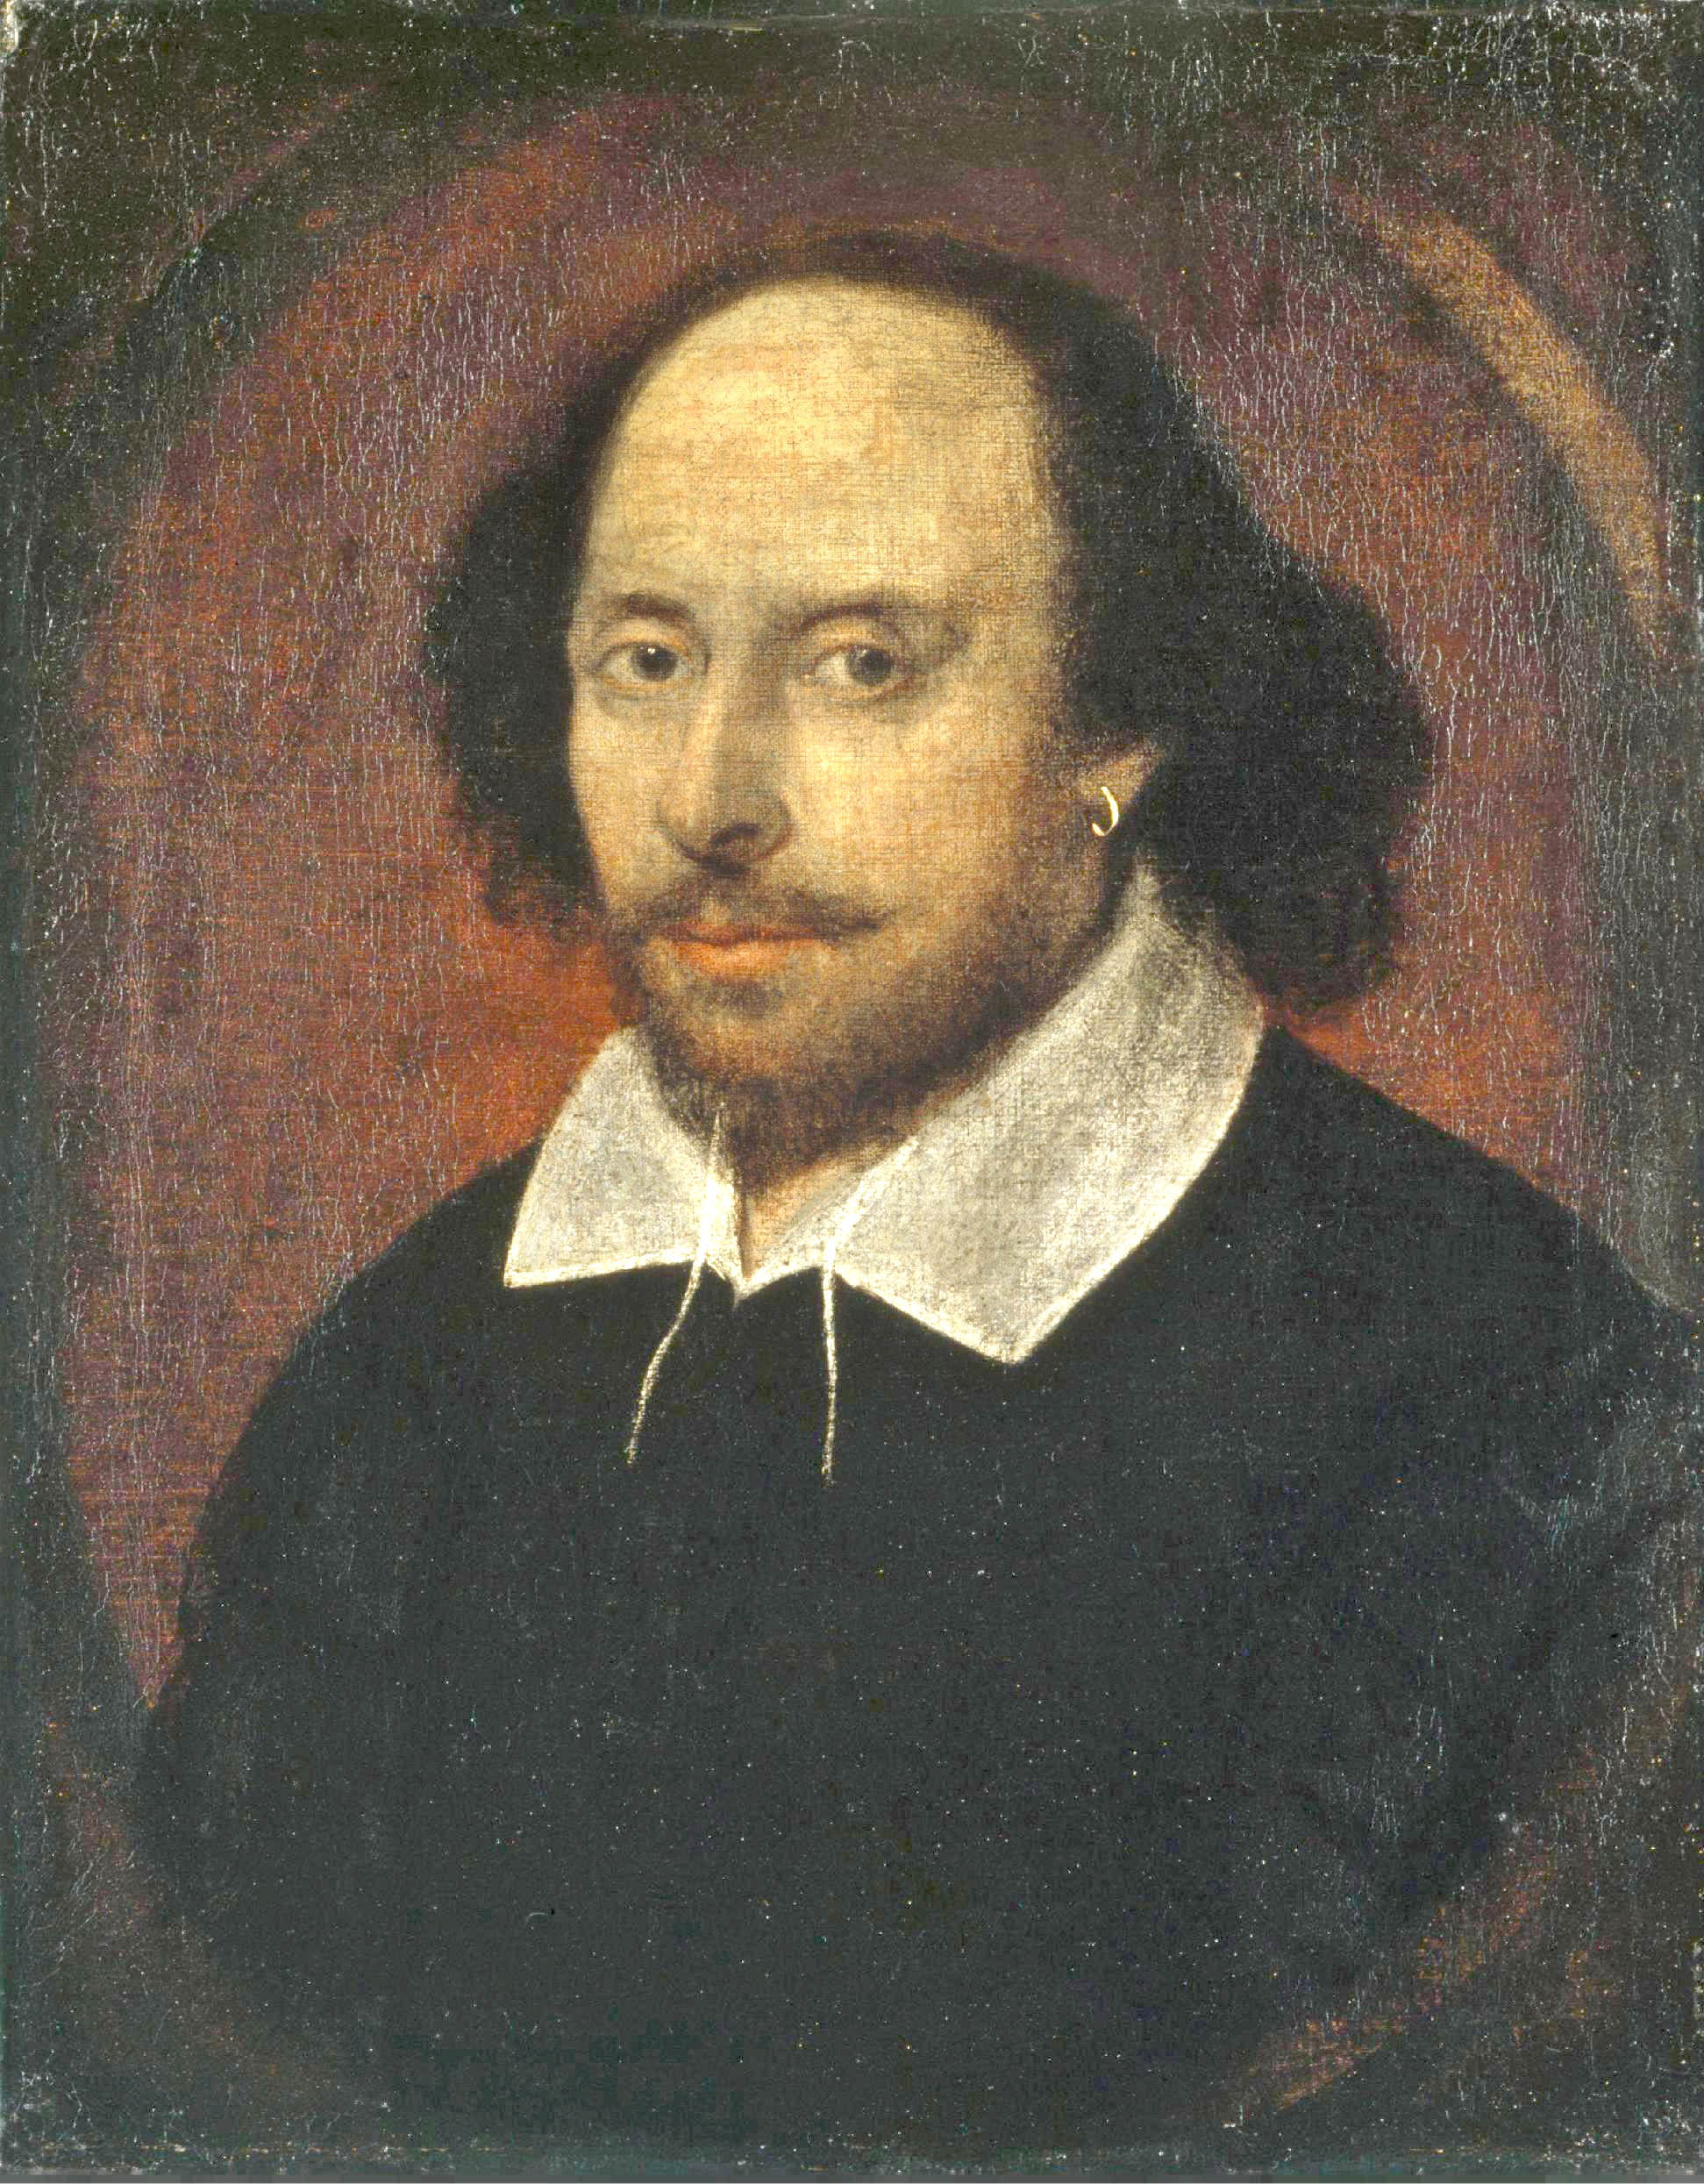 shakespearen sonnet 73 and sonnet 116  this was long thought to be the only portrait of william shakespeare that had any claim